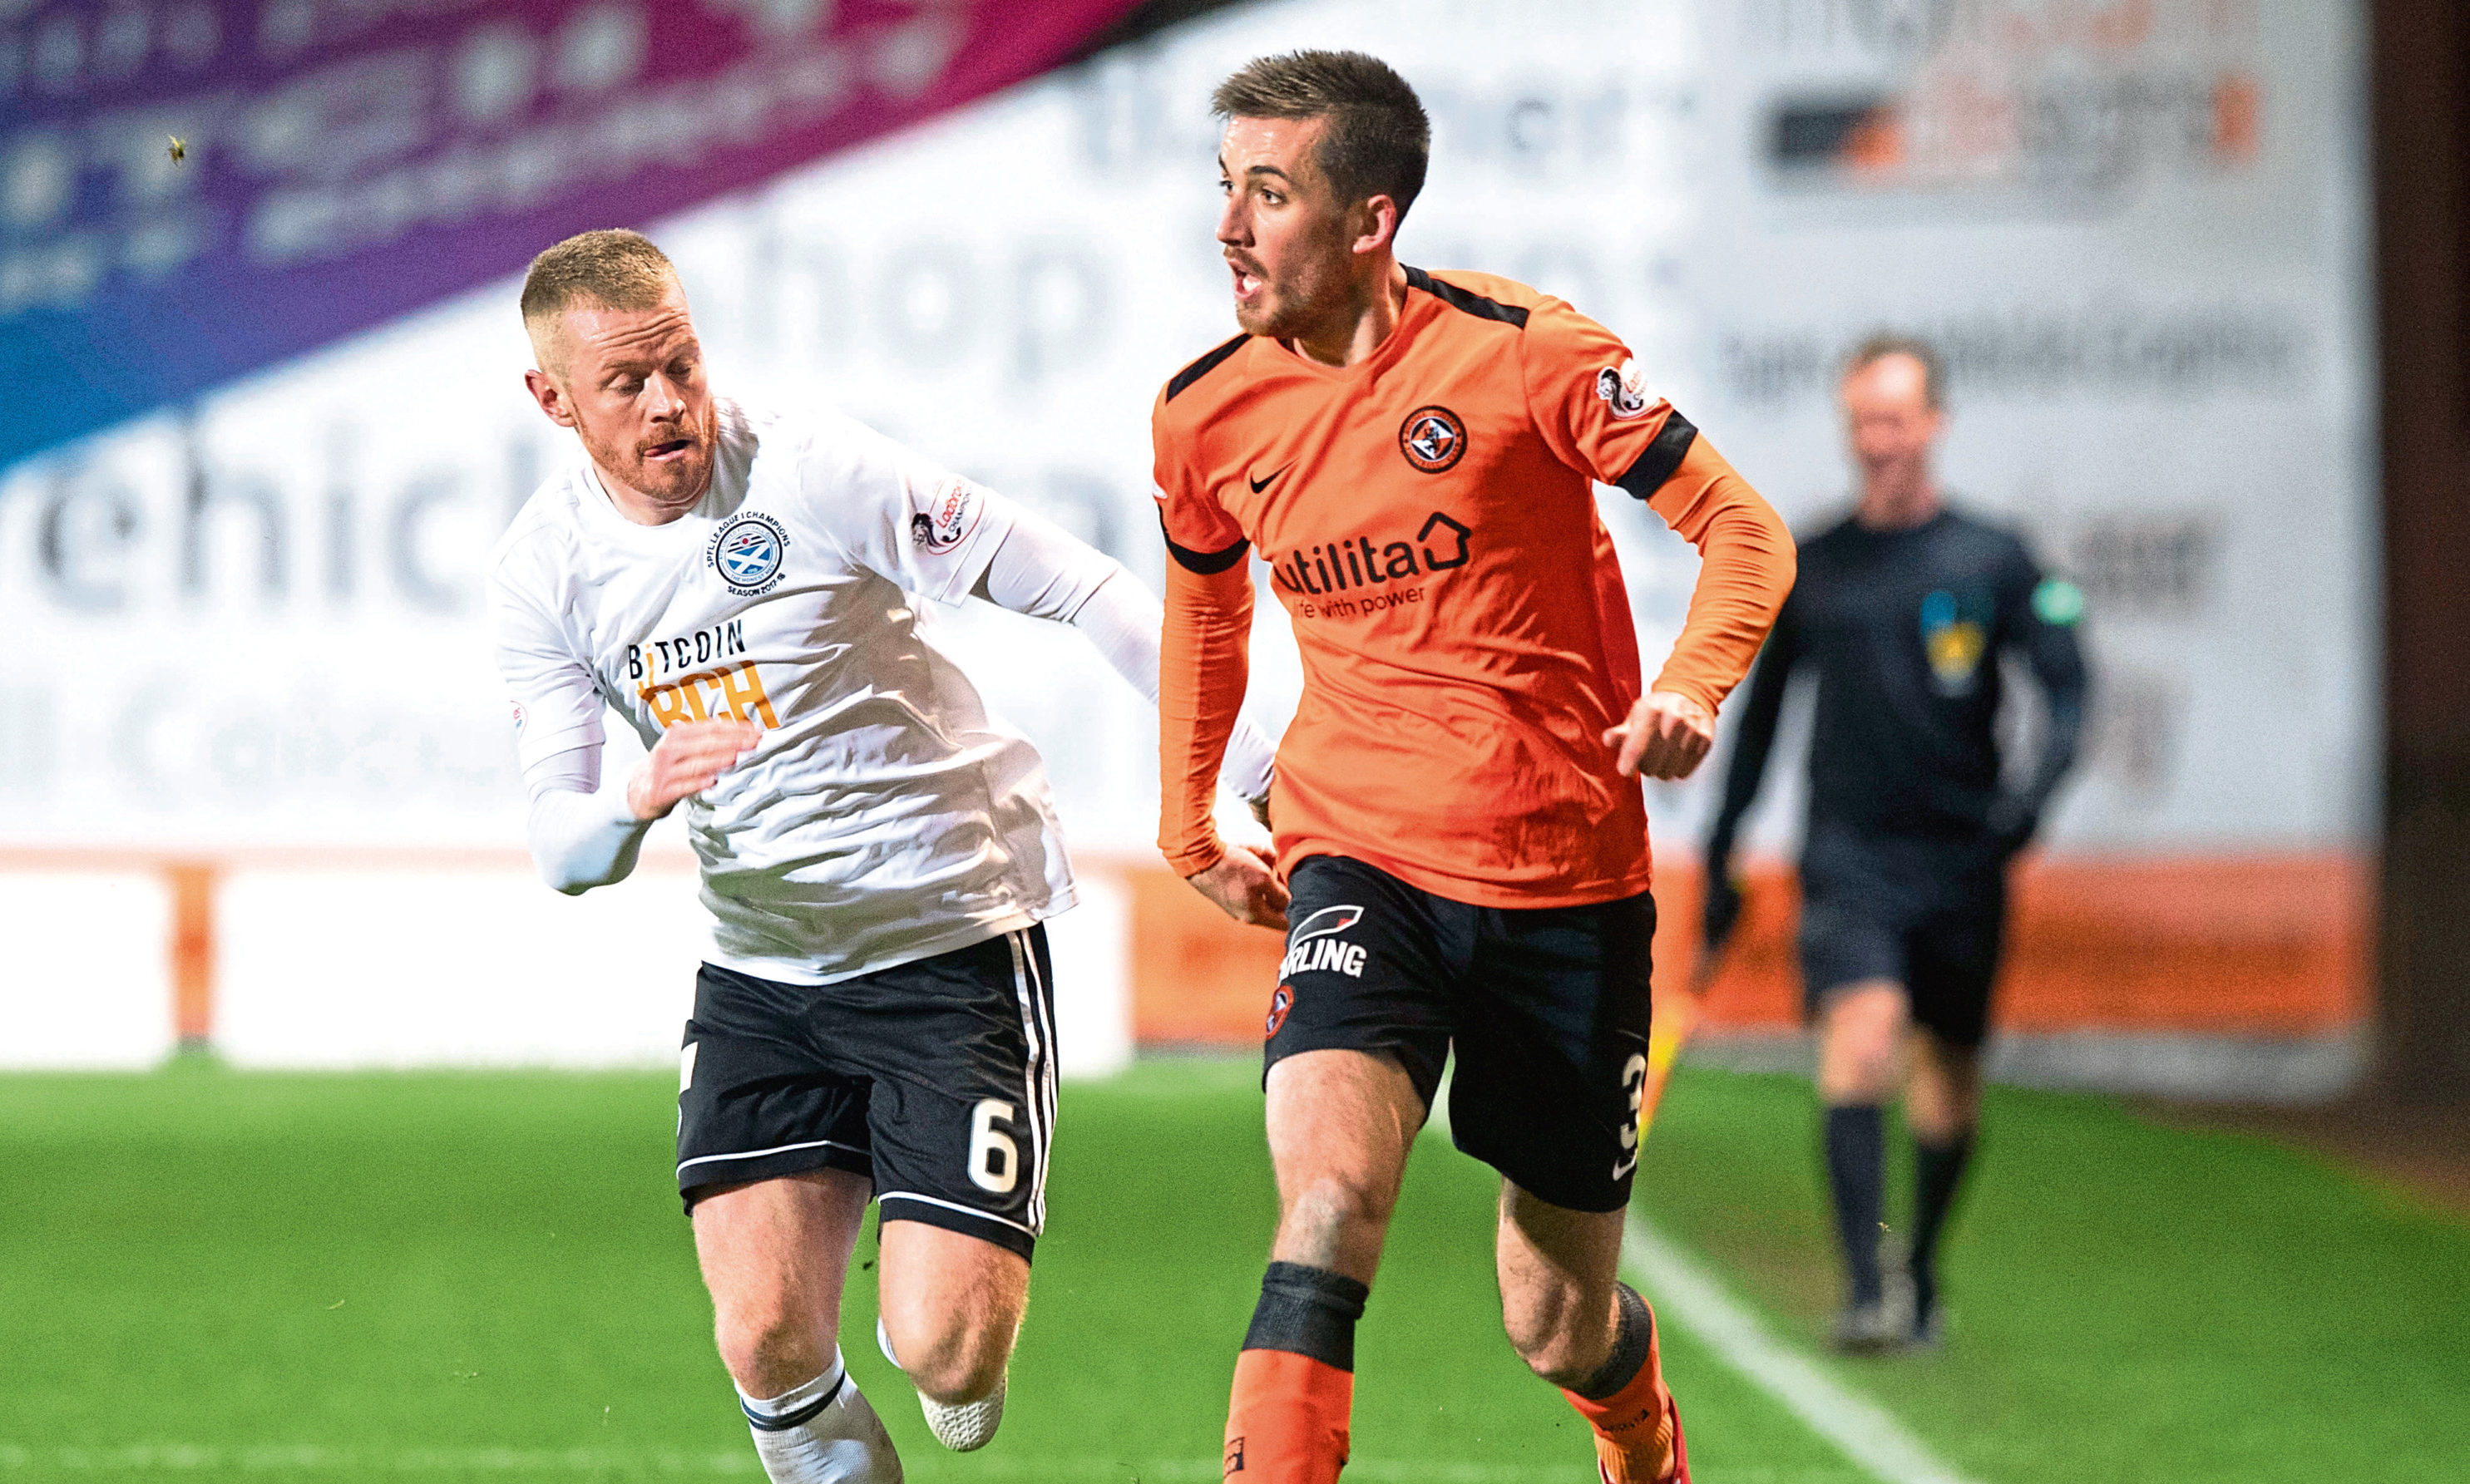 Dundee United left-back Callum Booth in action against Ayr